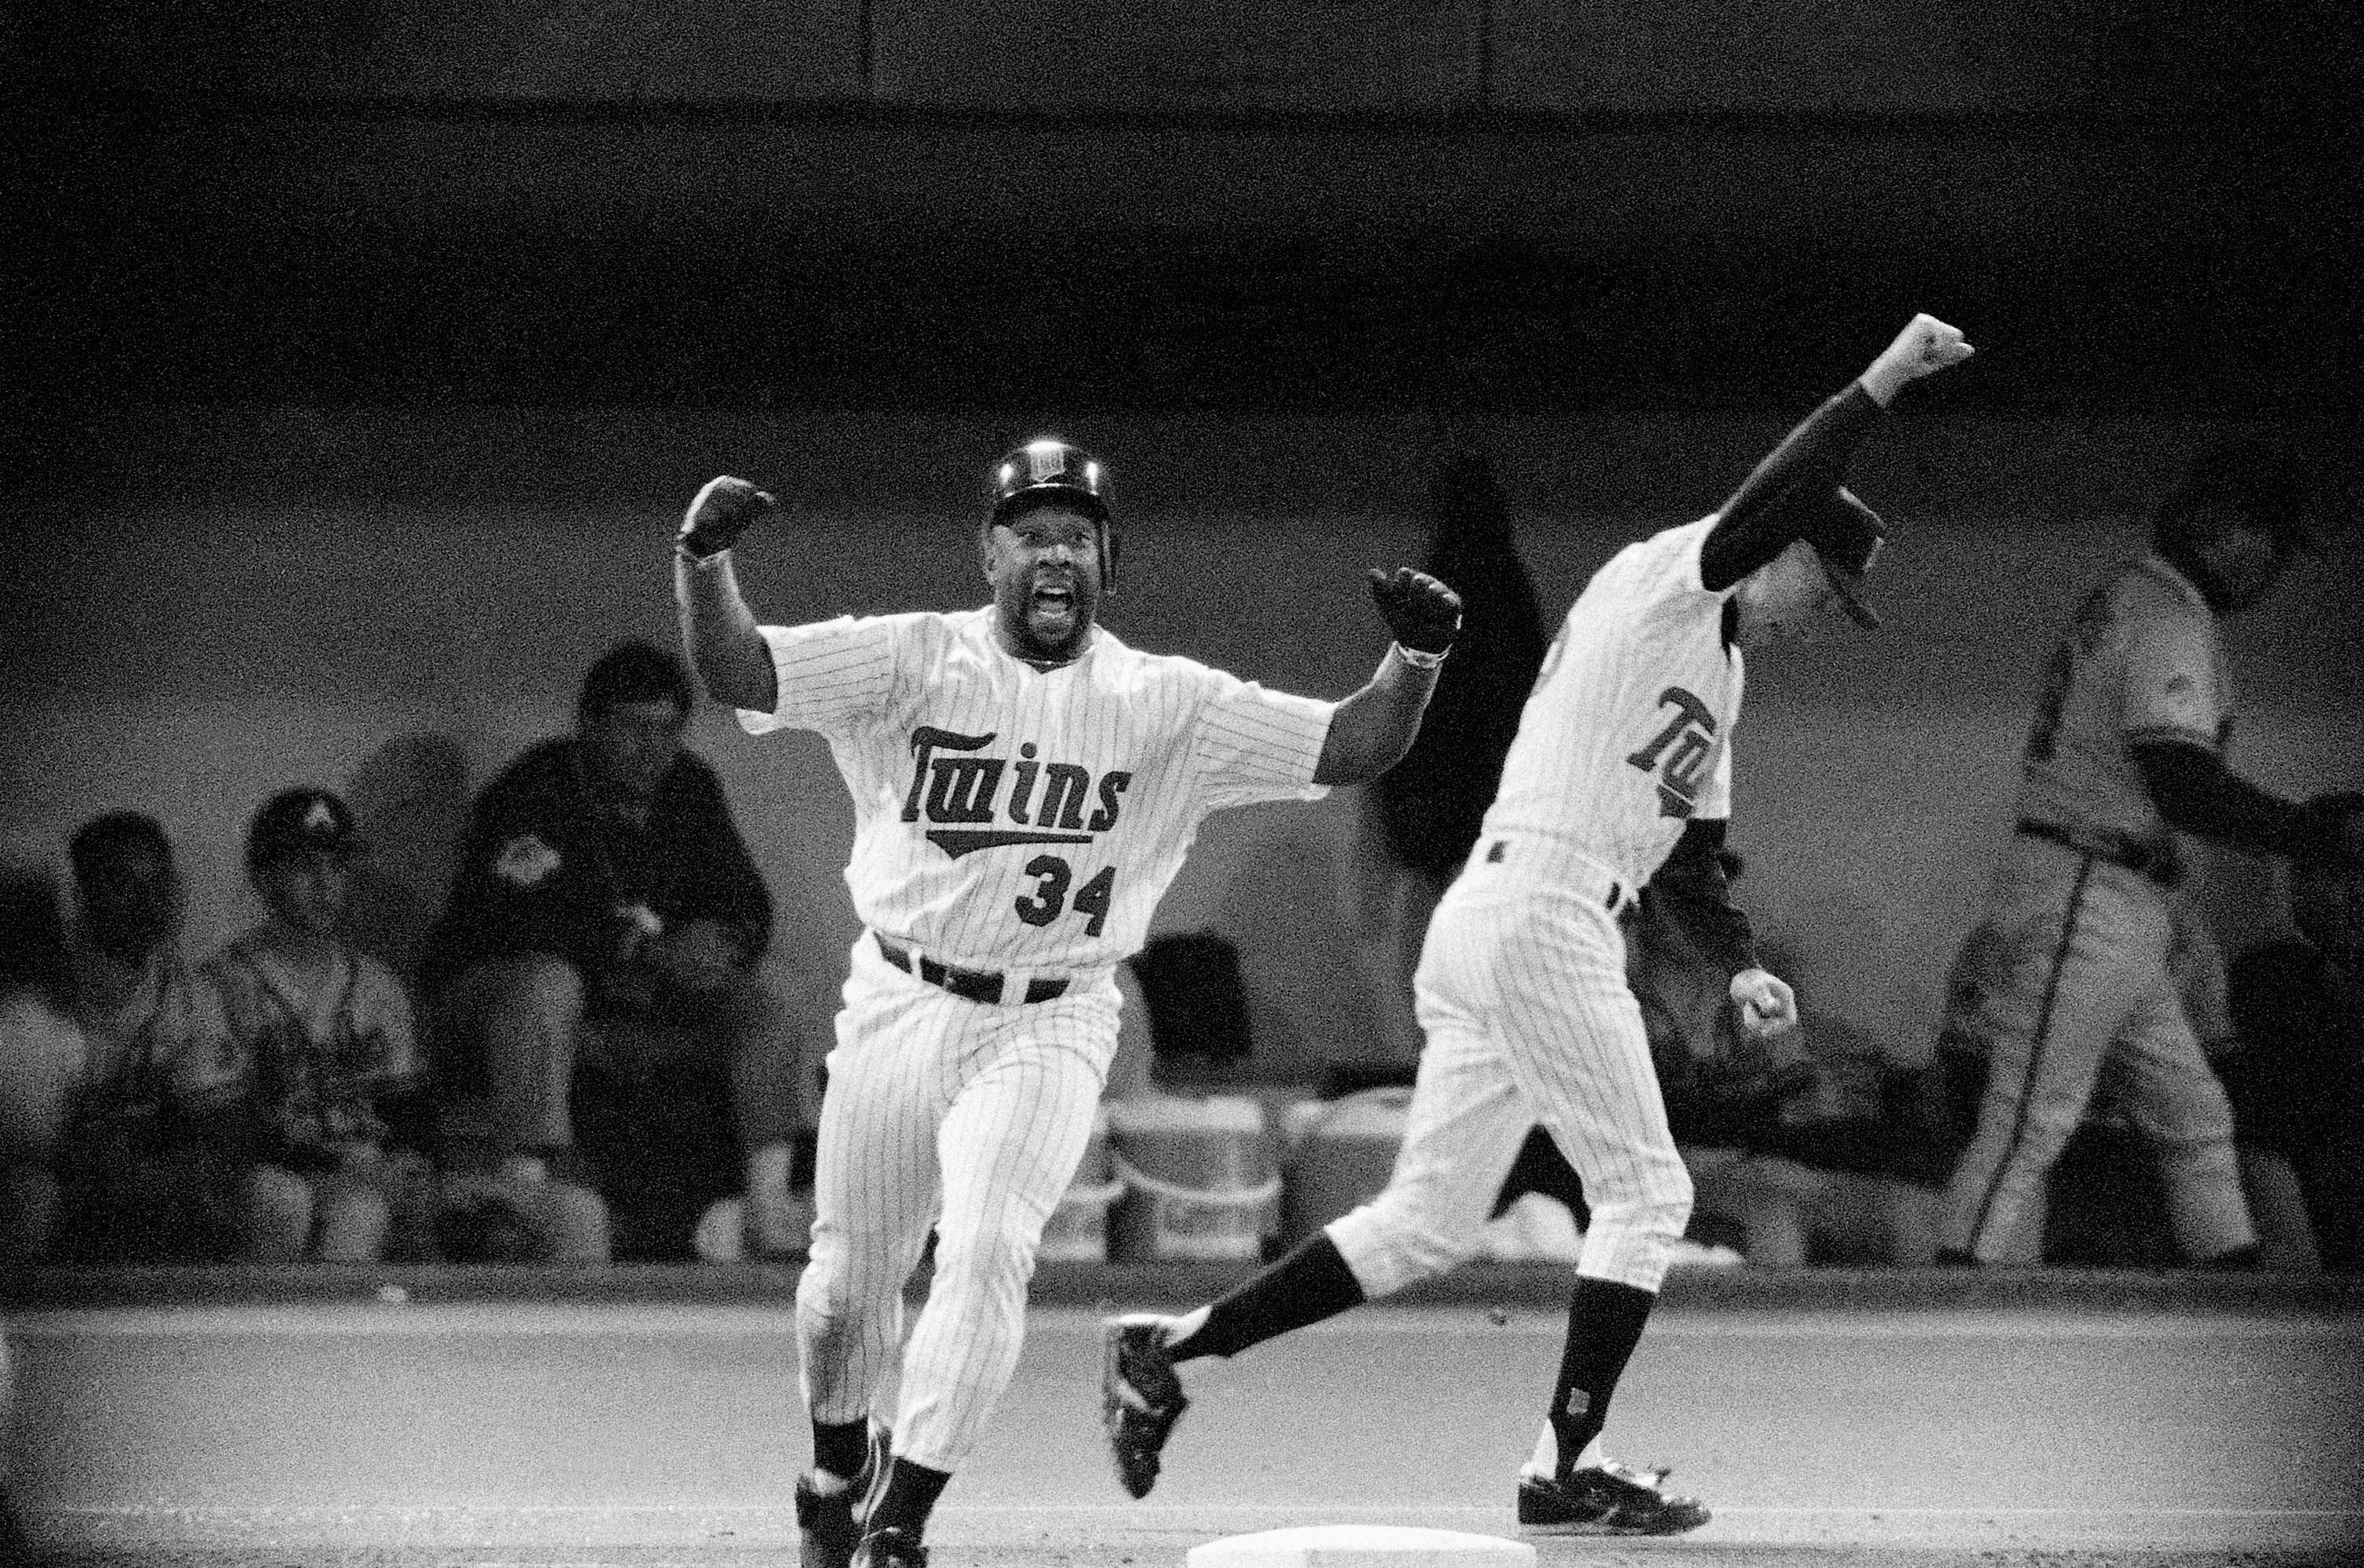 "Oct. 26, 1991: ""And We'll See You Tomorrow Night!""                                   Kirby Puckett wins Game 6 with a home run in the bottom of the 11th with 2 outs, pushing for a Game 7 against the Atlanta                                   Braves and setting the Twins up for eventual victory. This is considered one of the greatest World Series ever played."